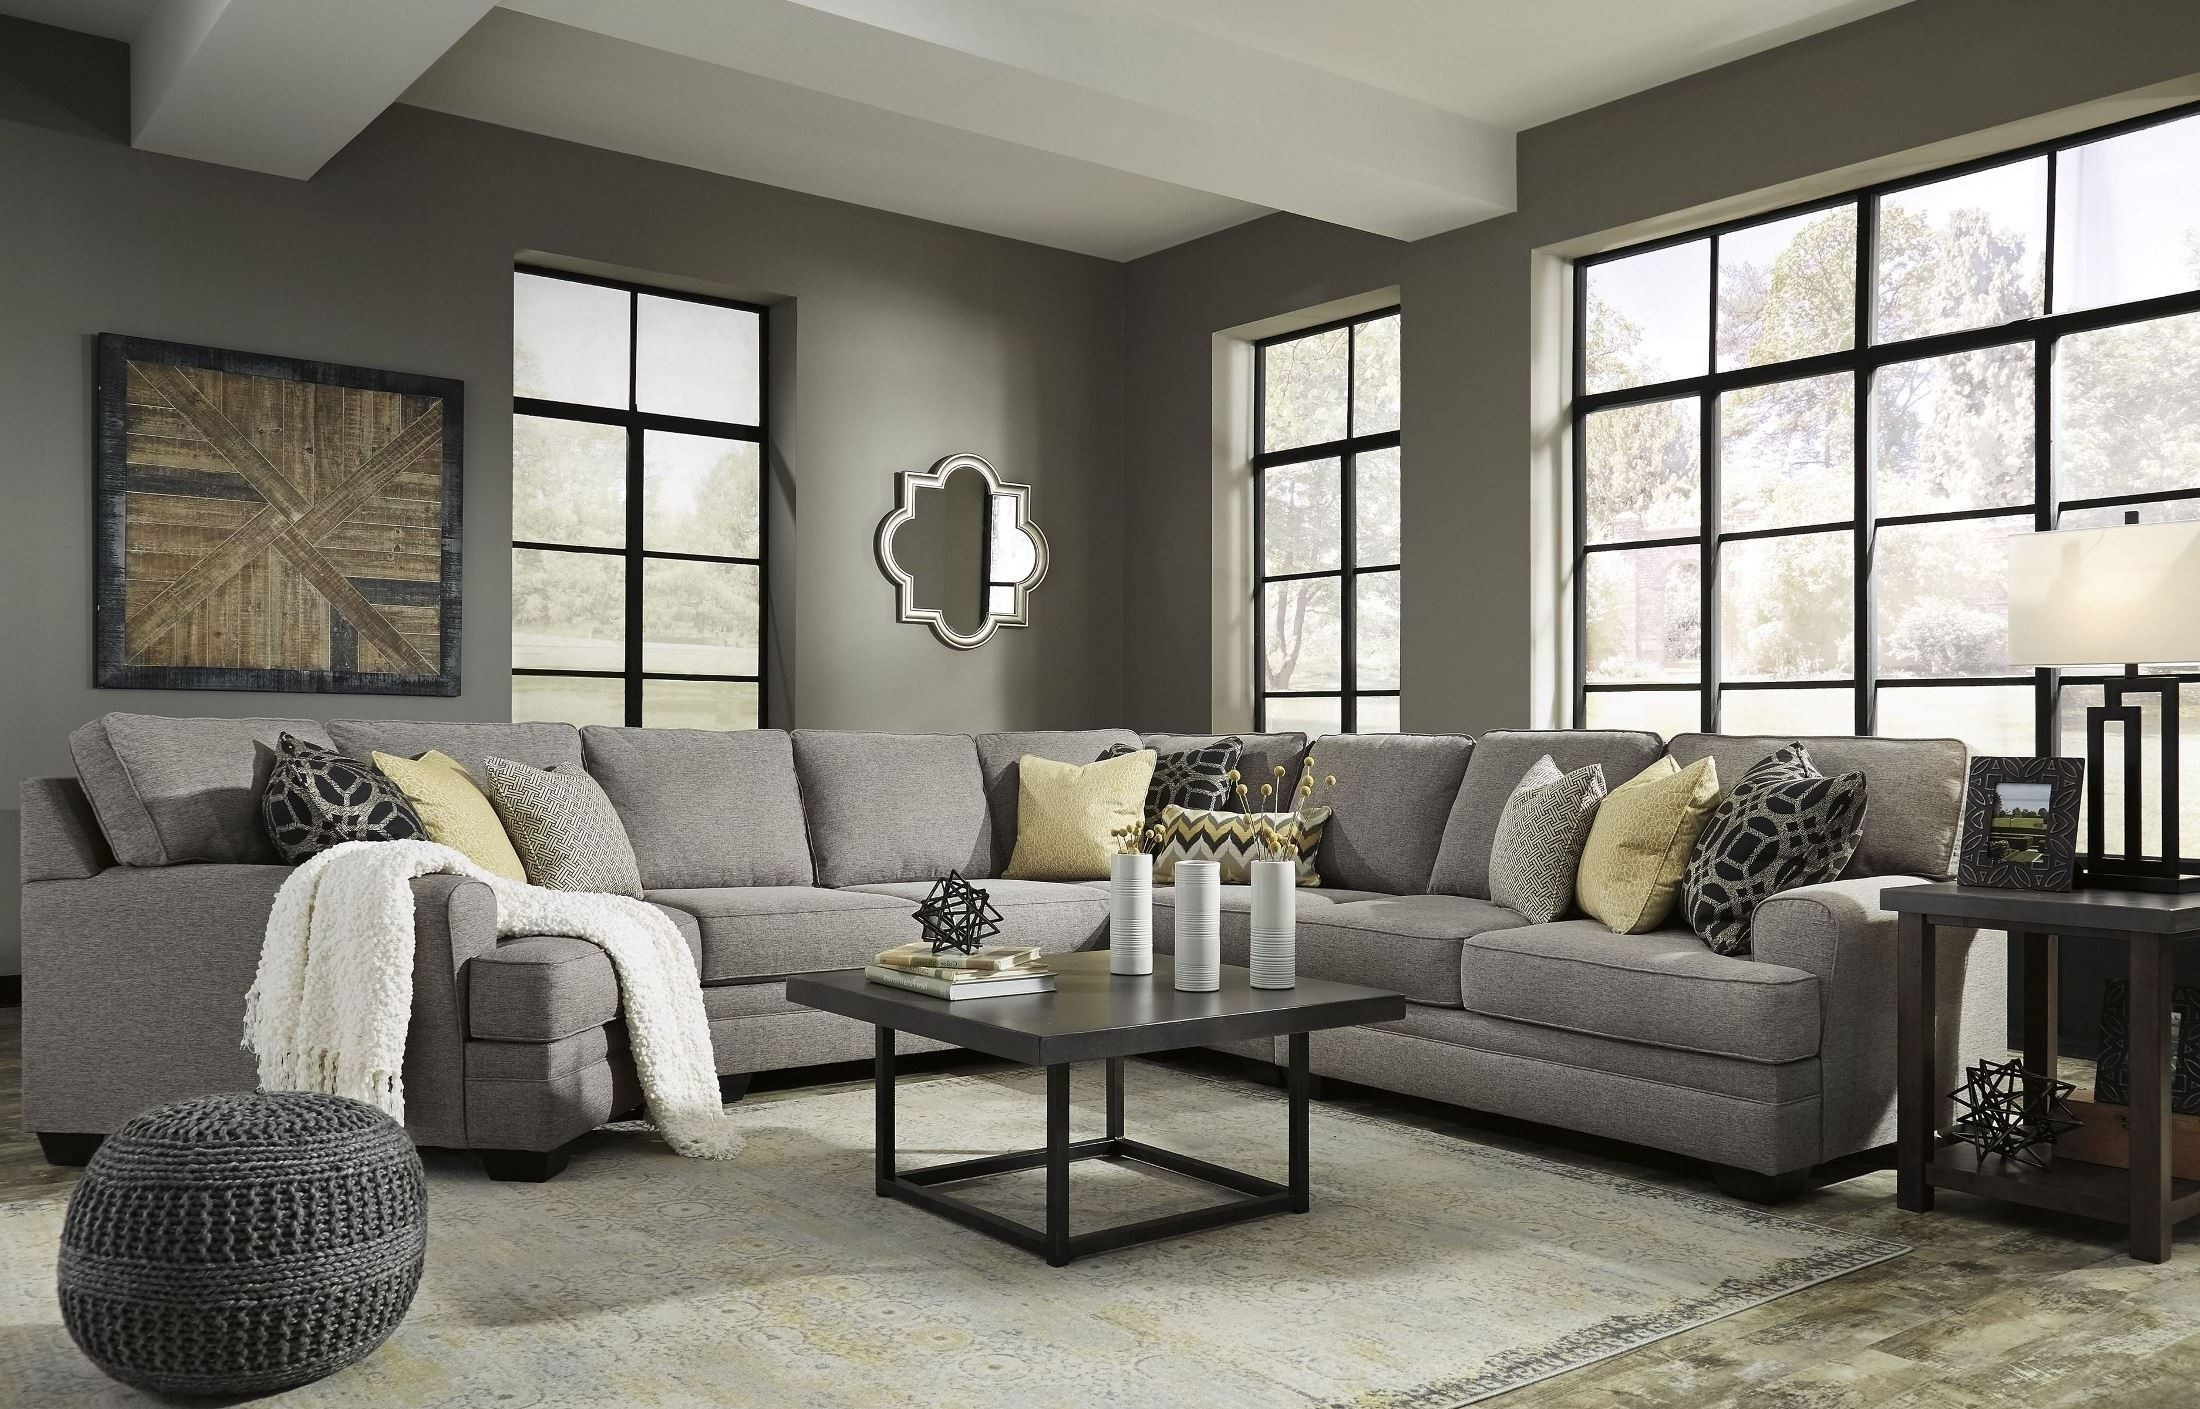 Cresson Pewter Laf Cuddler Sectional From Ashley | Coleman Furniture Intended For Aspen 2 Piece Sectionals With Laf Chaise (View 11 of 25)